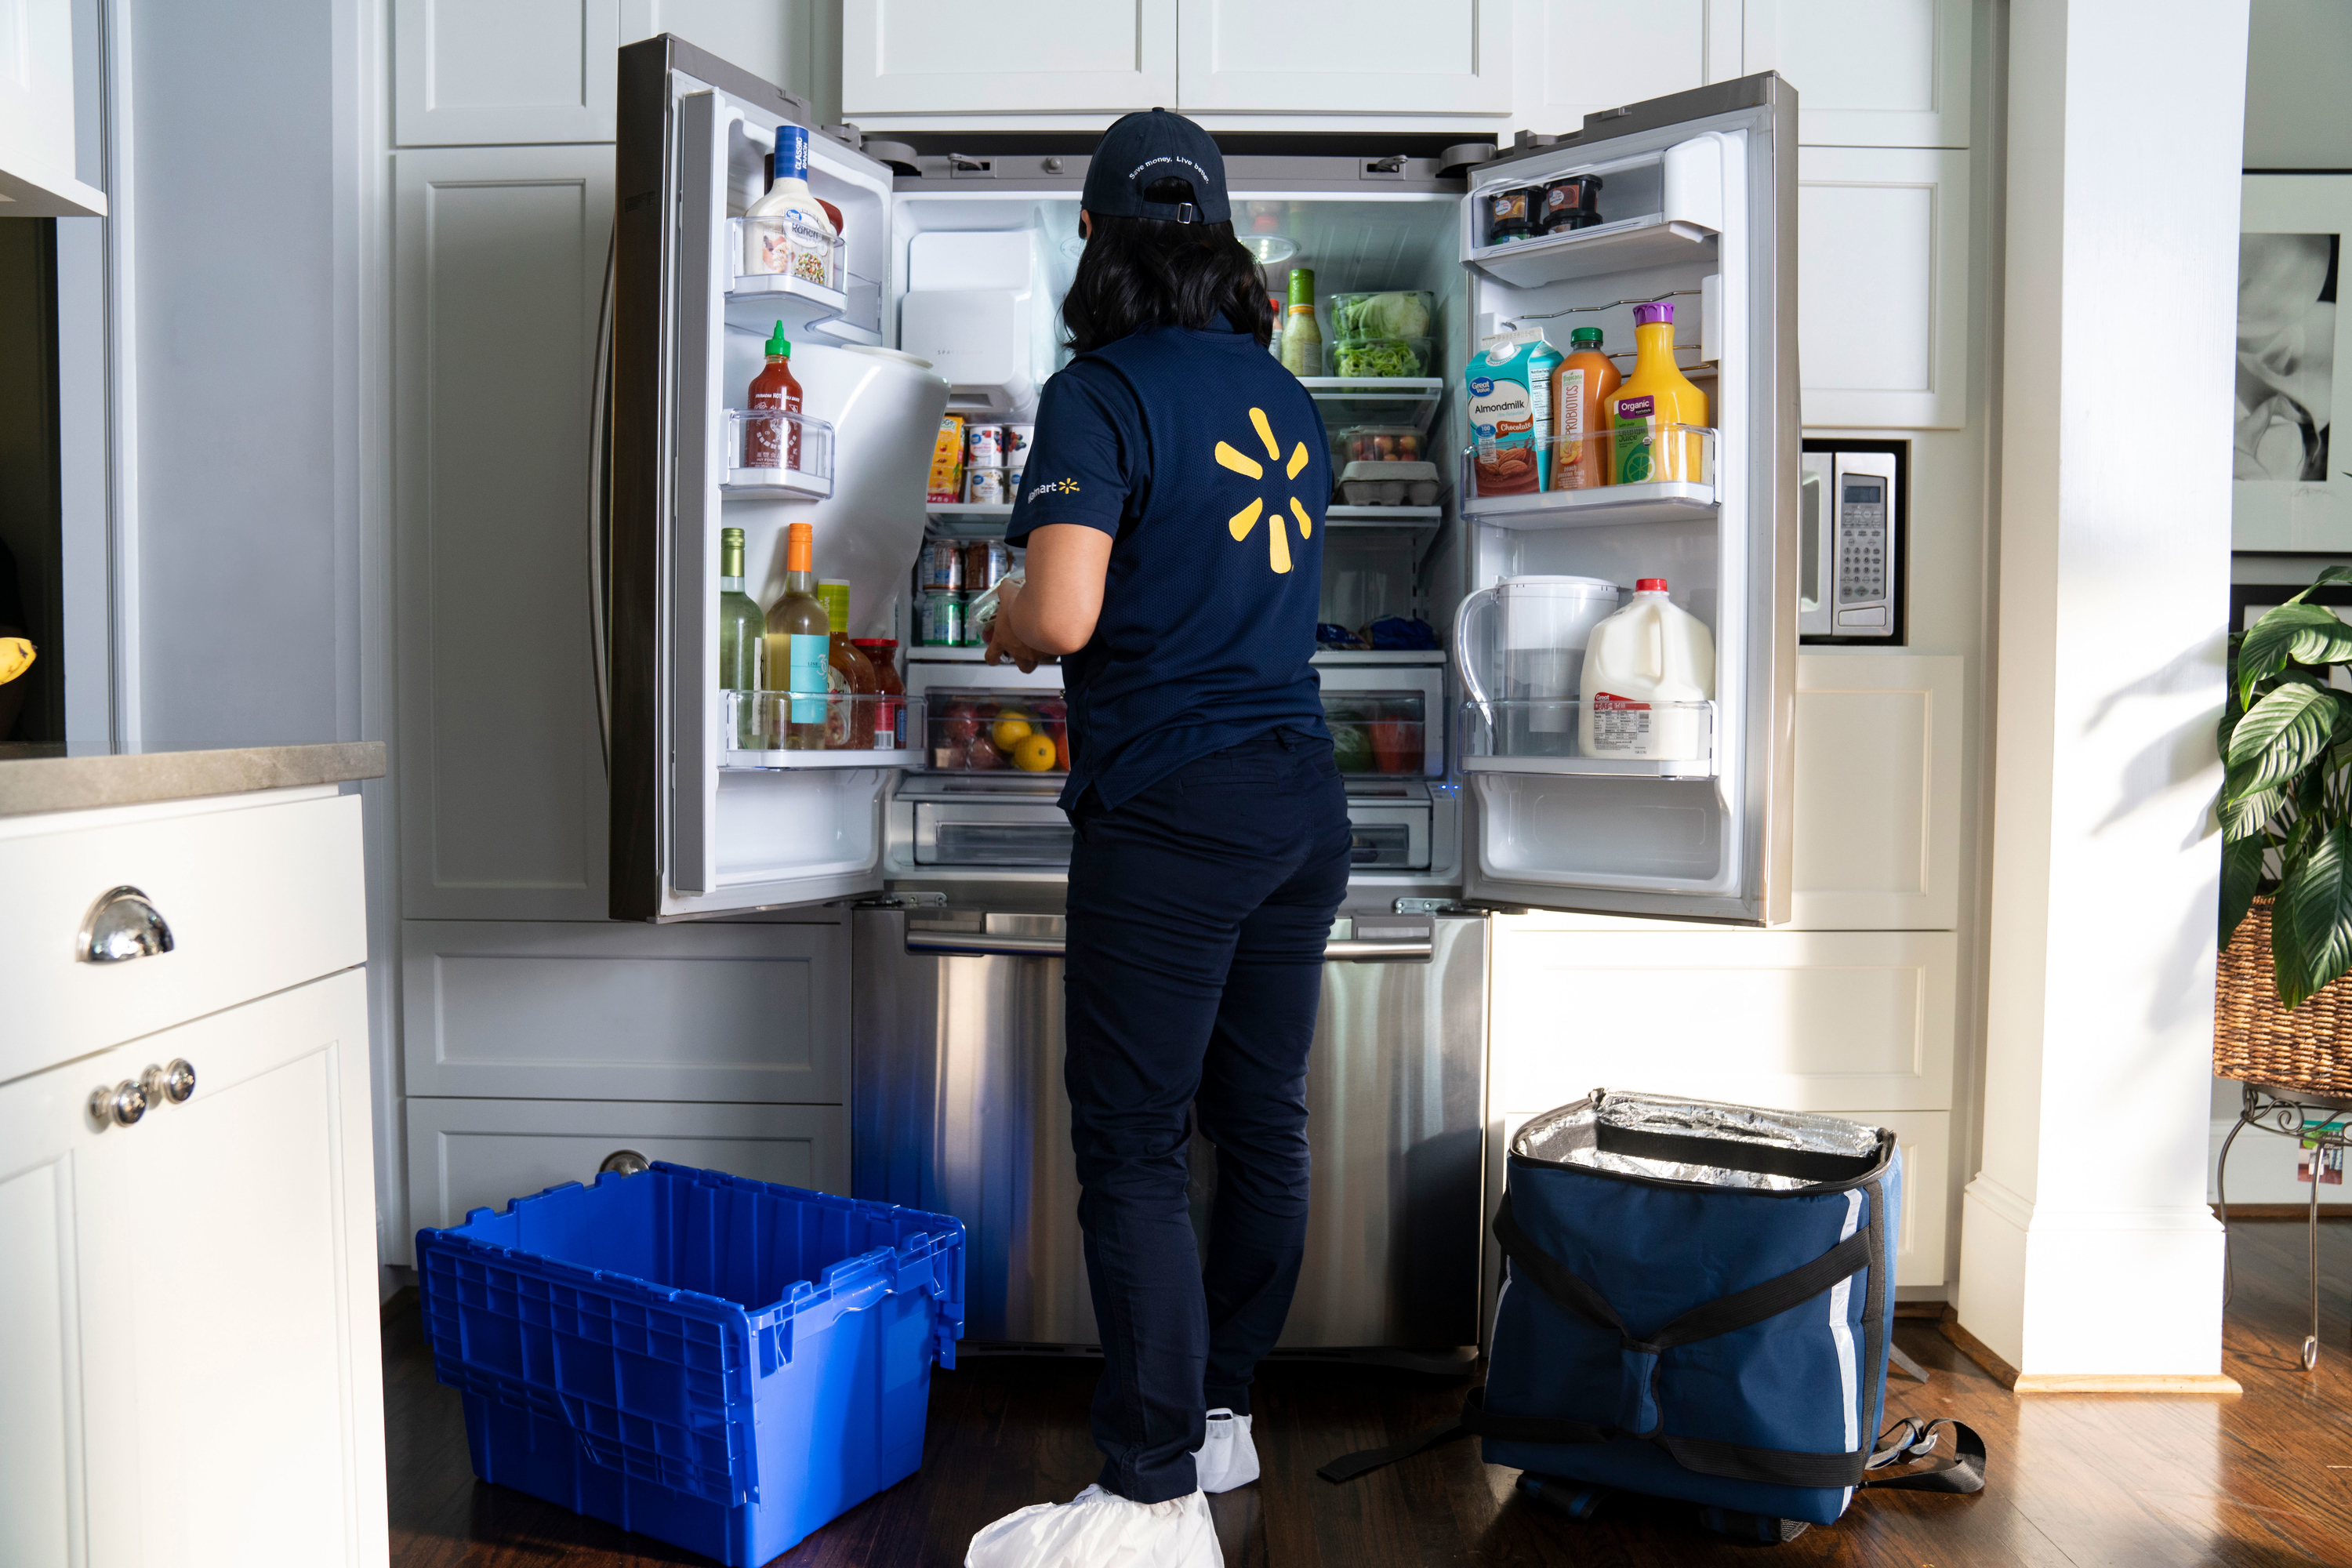 Walmart announces in-home delivery, will bring groceries right to your fridge